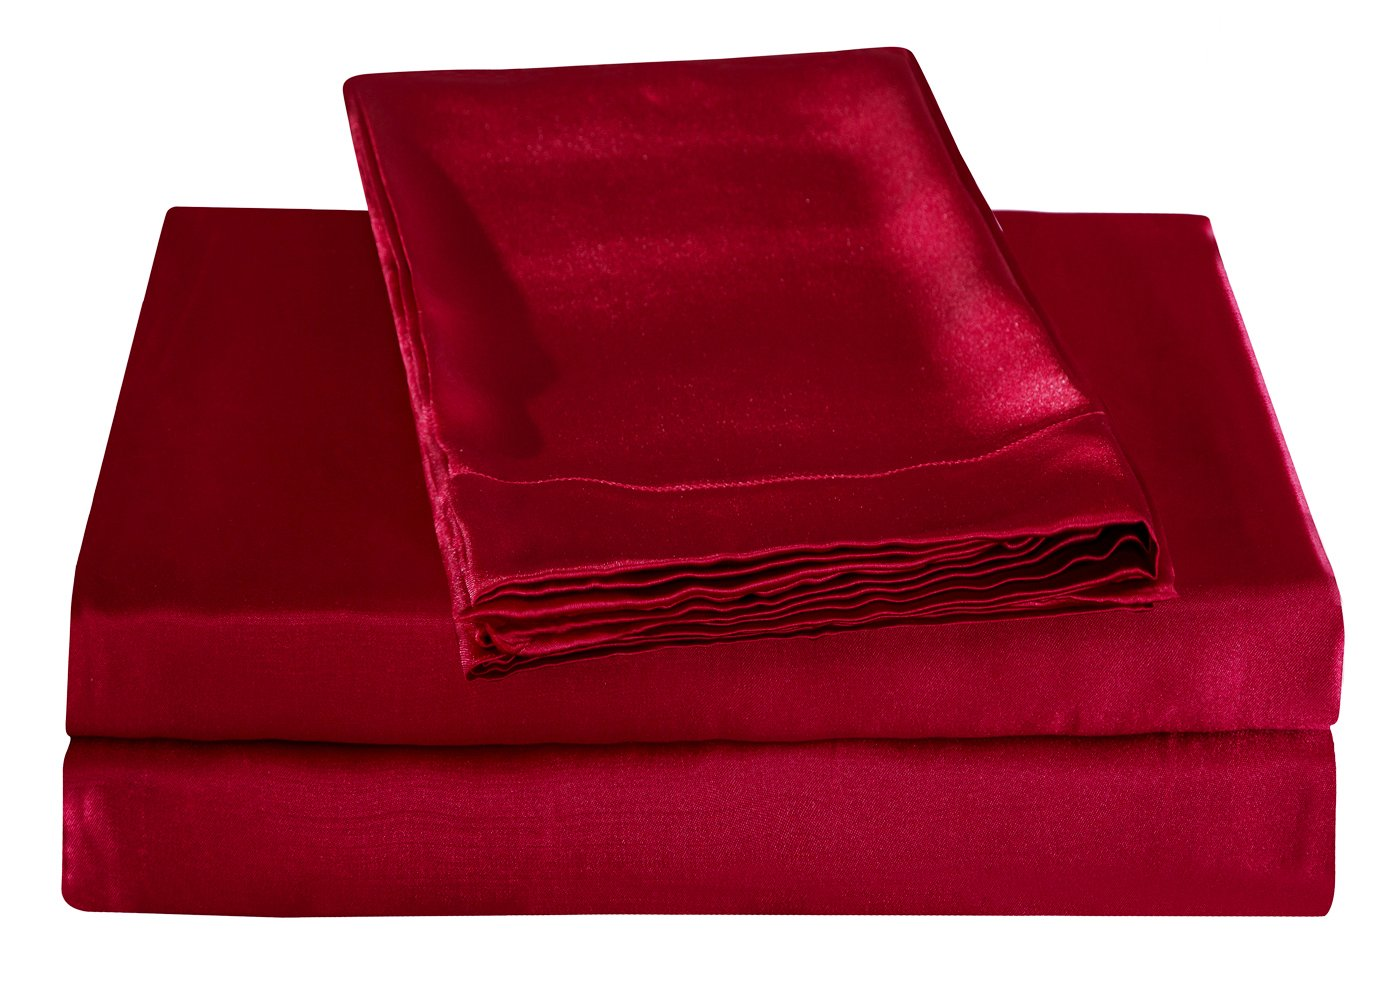 HONEYMOON HOME FASHIONS Ultra Luxury and Soft Satin Queen Bed Sheet Set - Red